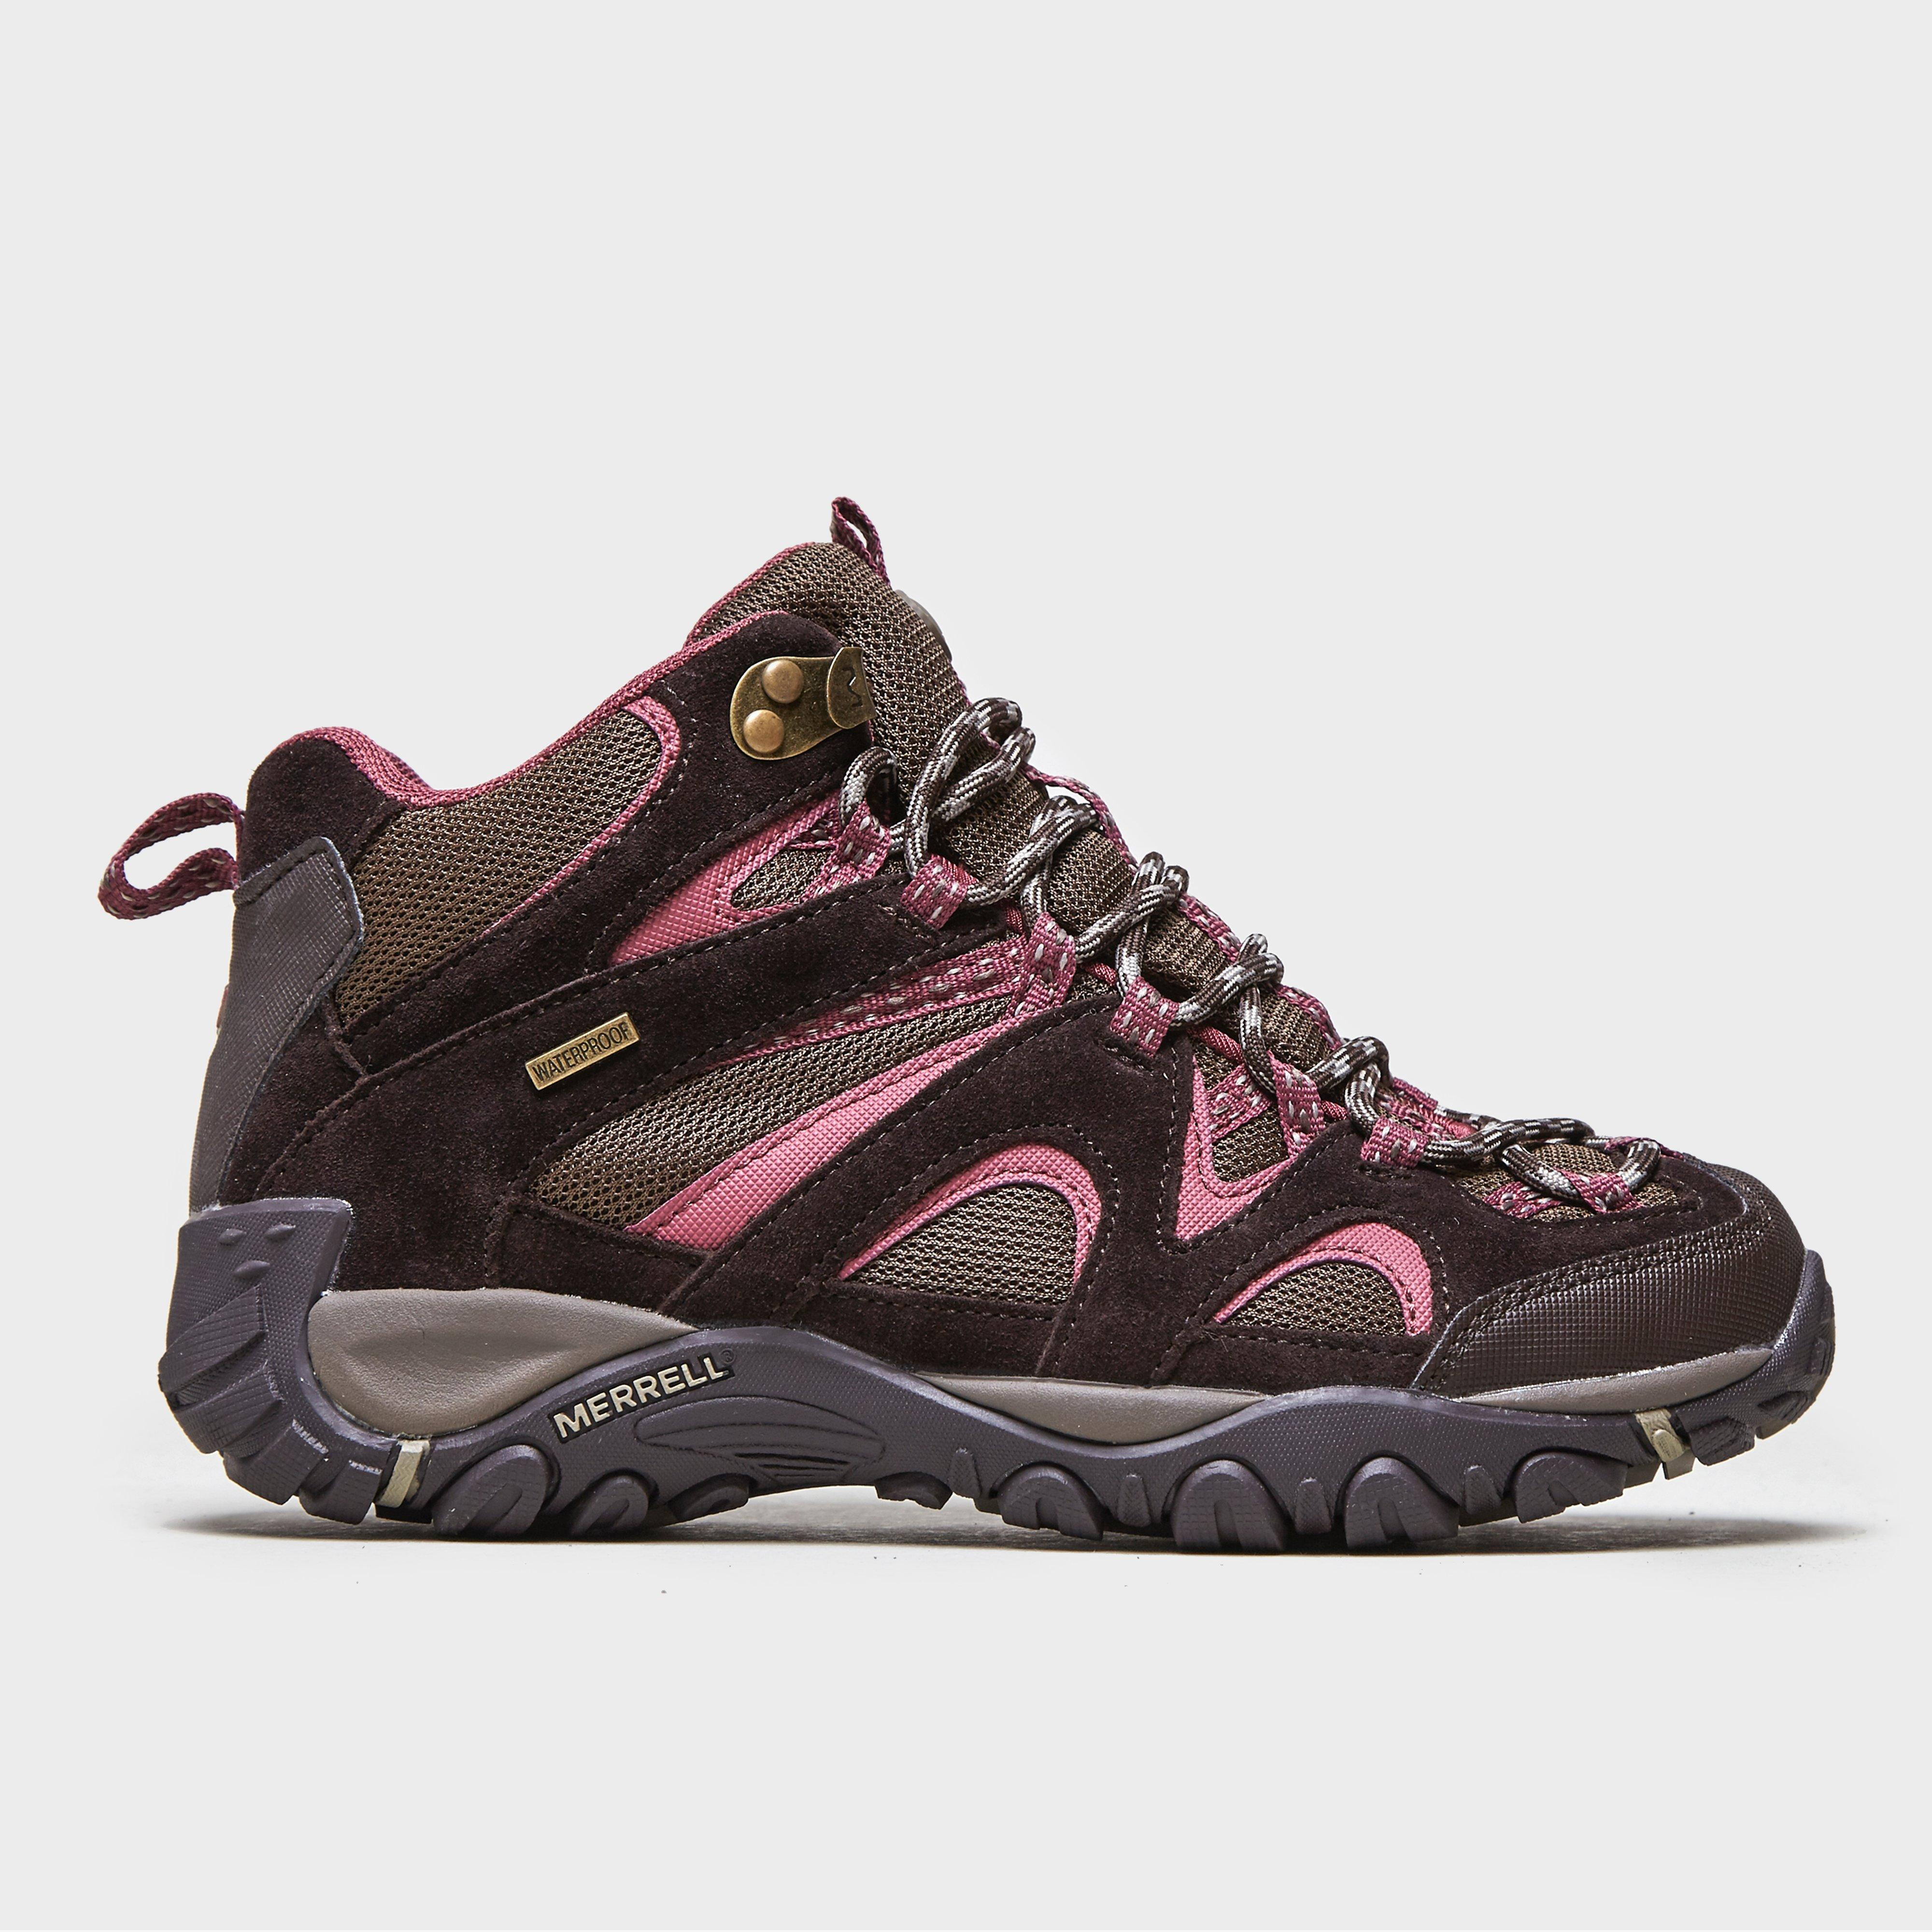 Popular Womens Hiking Boots  1999  Free SH  MyBargainBuddycom